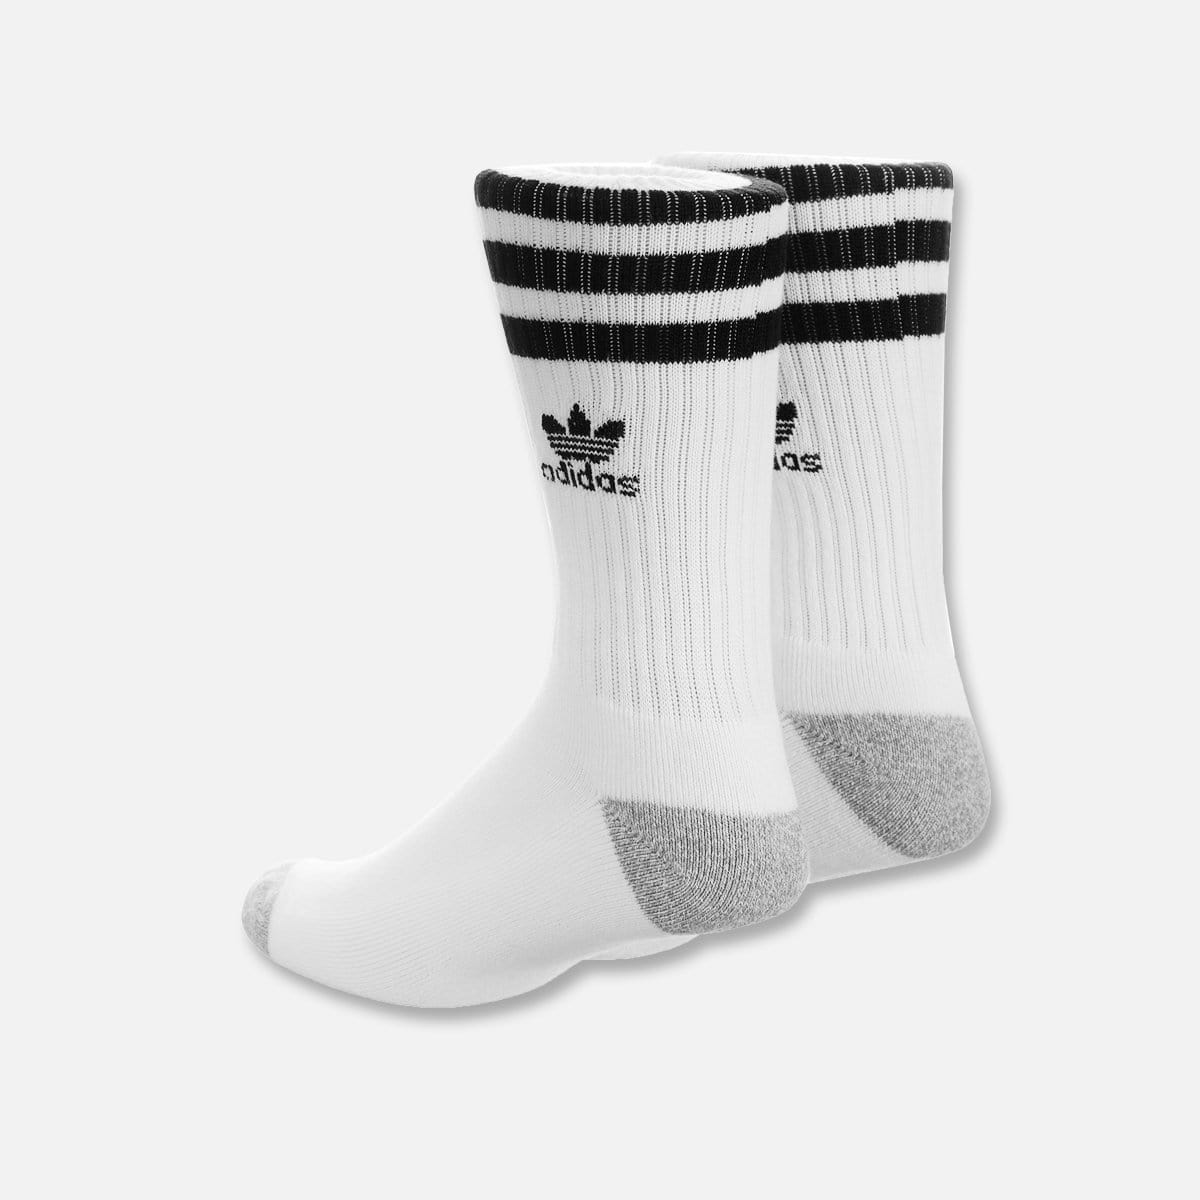 RUVilla.com is where to buy the adidas Roller Crew Sock (White/Black)!